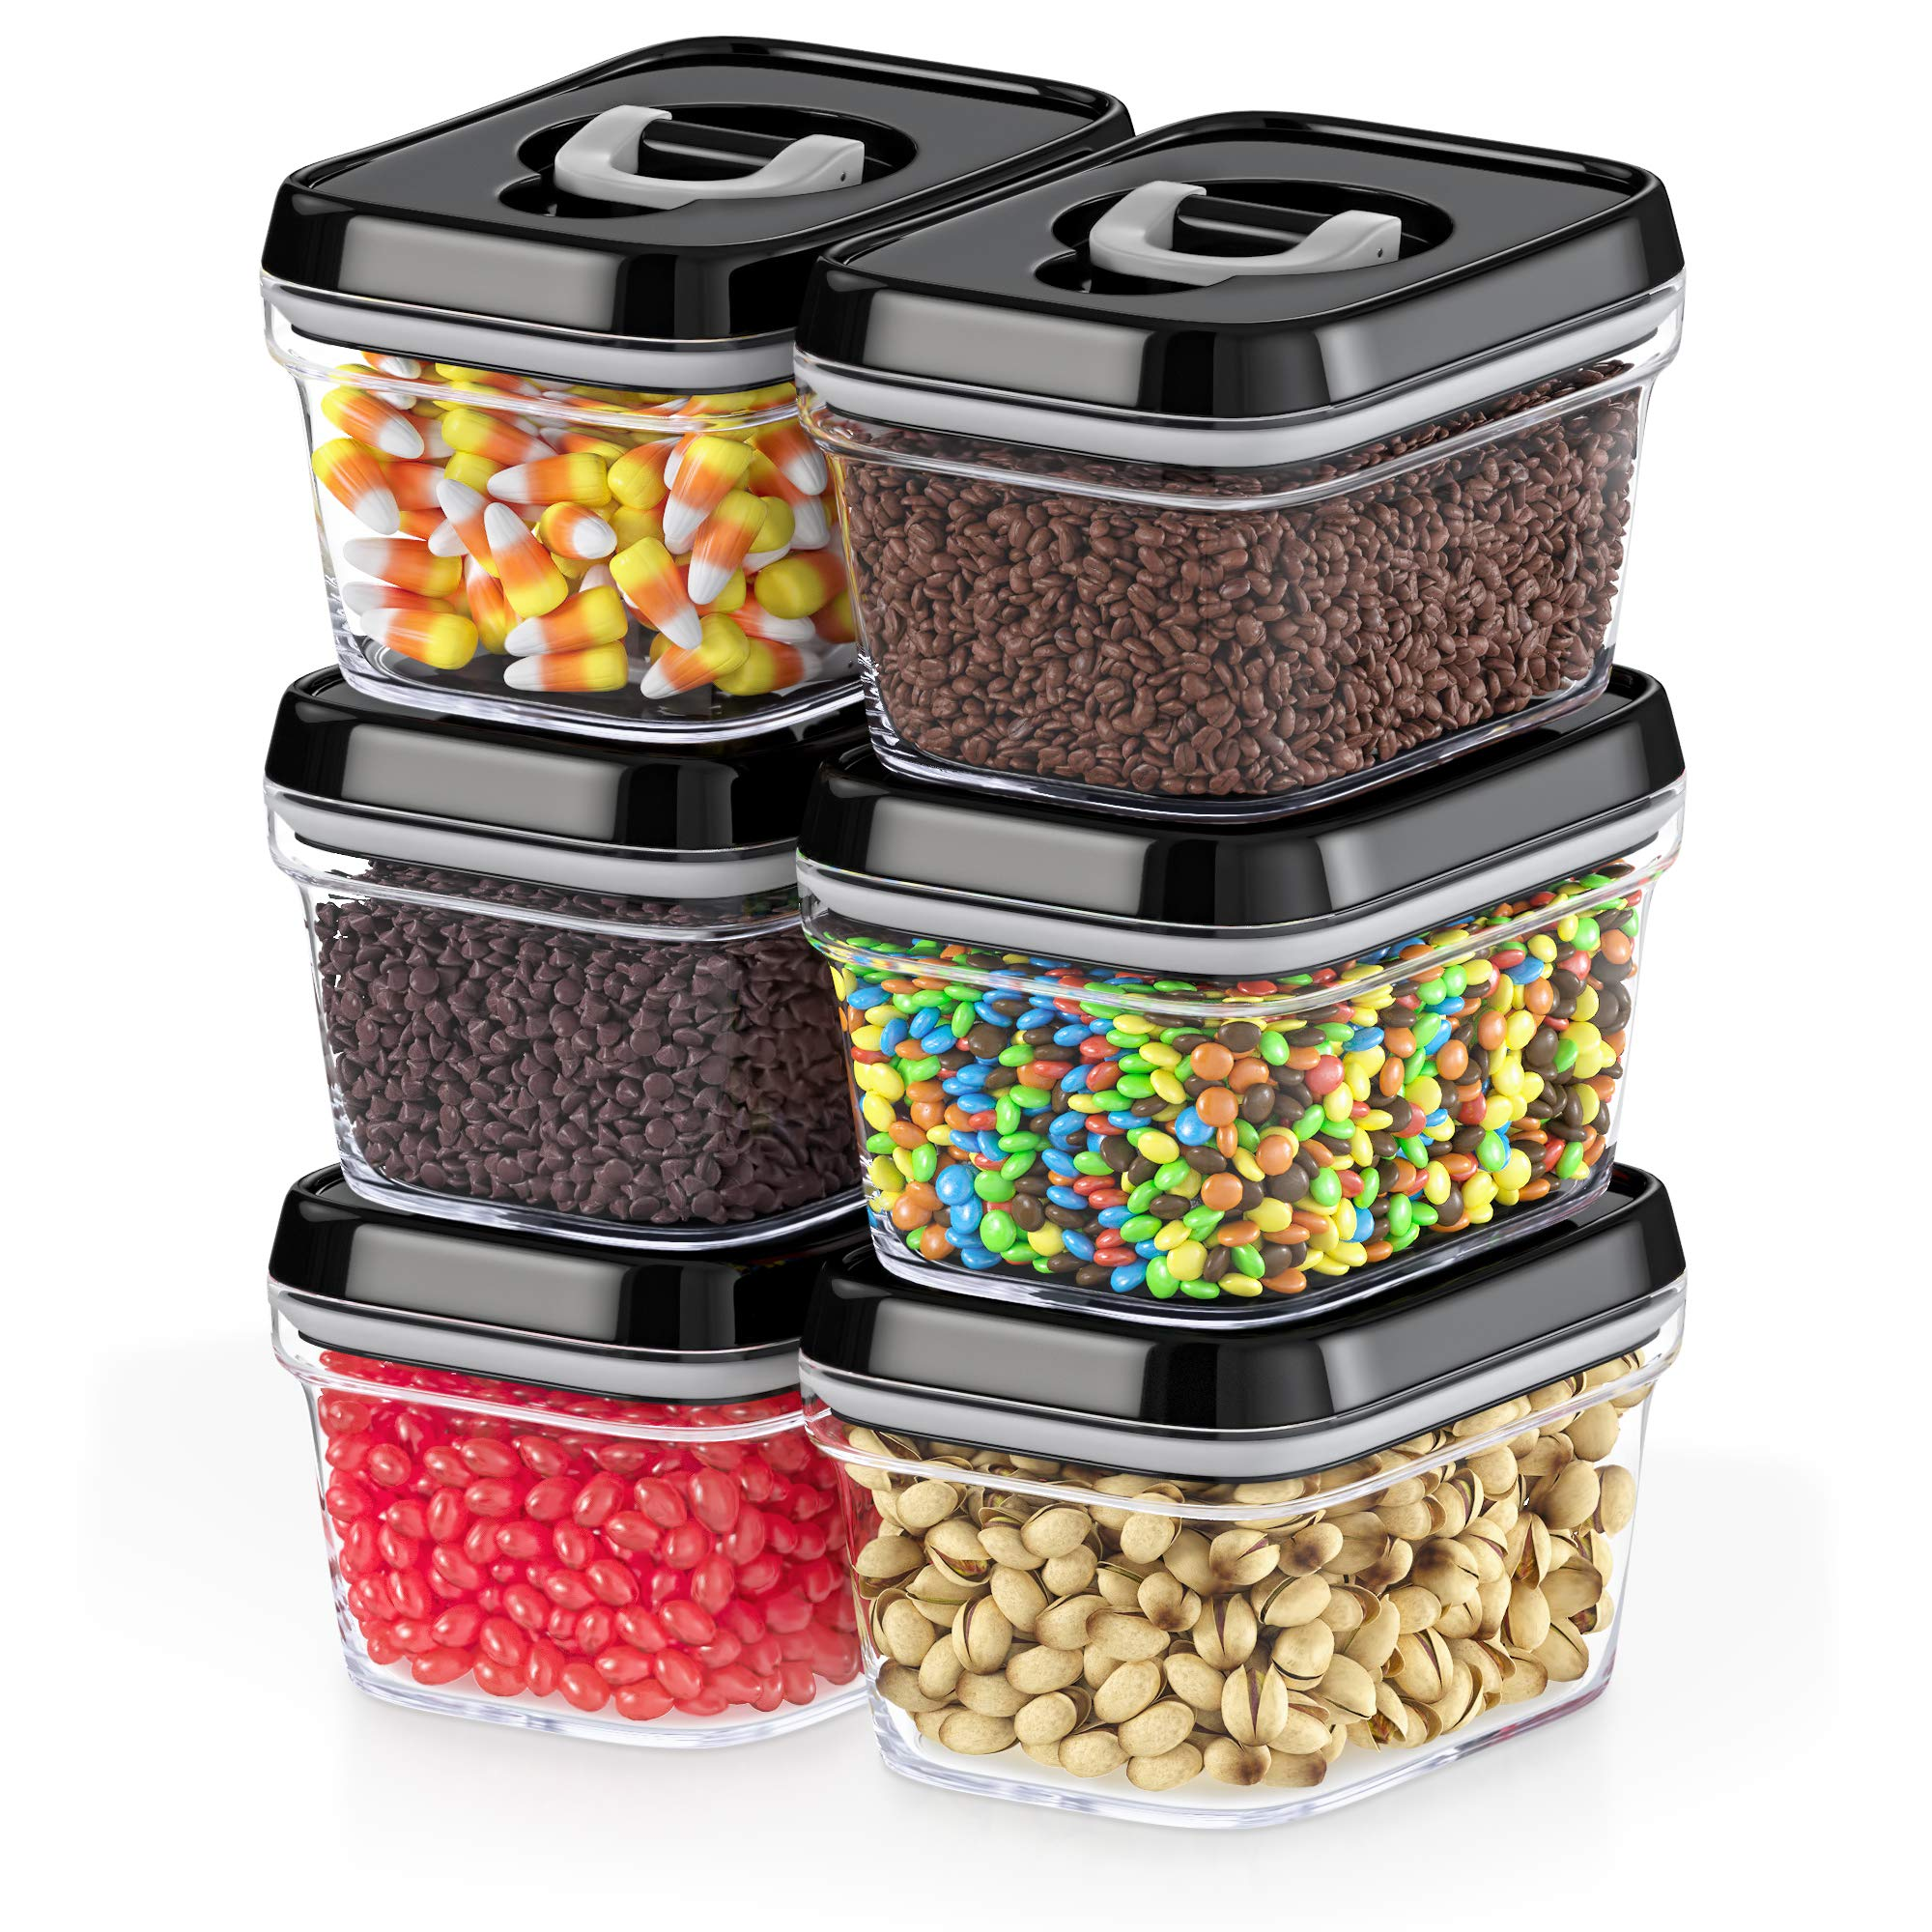 Dwellza Kitchen Airtight Food Storage Containers with Lids - 6 Pieces All Same Size - Pantry Container for Chocolate, Candy, Nuts Coffee and Tea, Clear Plastic BPA-Free, Keeps Food Fresh & Dry by DWËLLZA KITCHEN